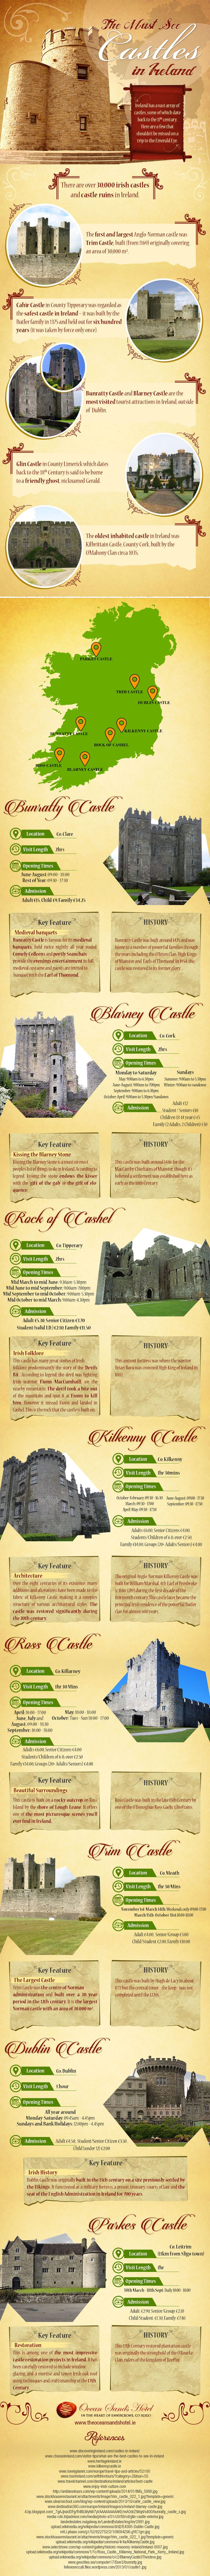 The Must See Castles In Ireland. here is an infographic explaining the best castles in Ireland, and lots of info to go with them! European castles are always the greatest castles in the world!